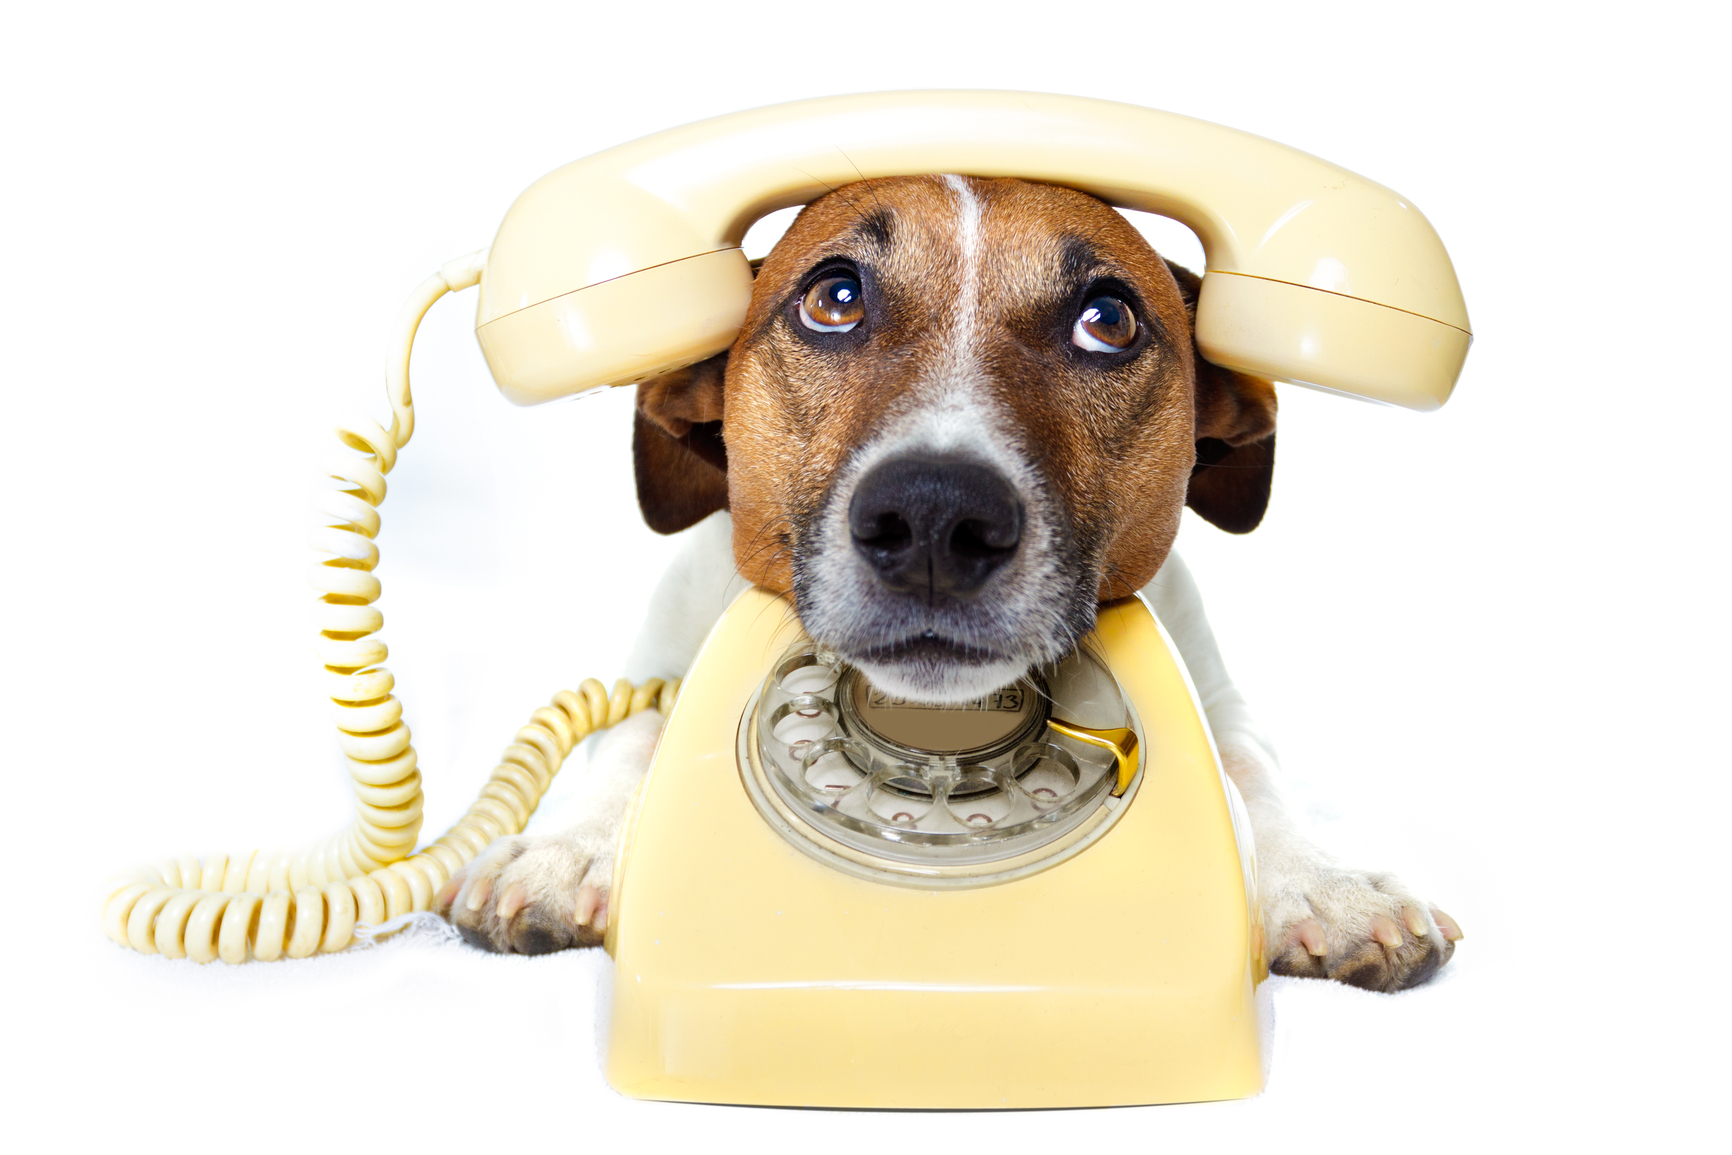 Dog using a yellow phone